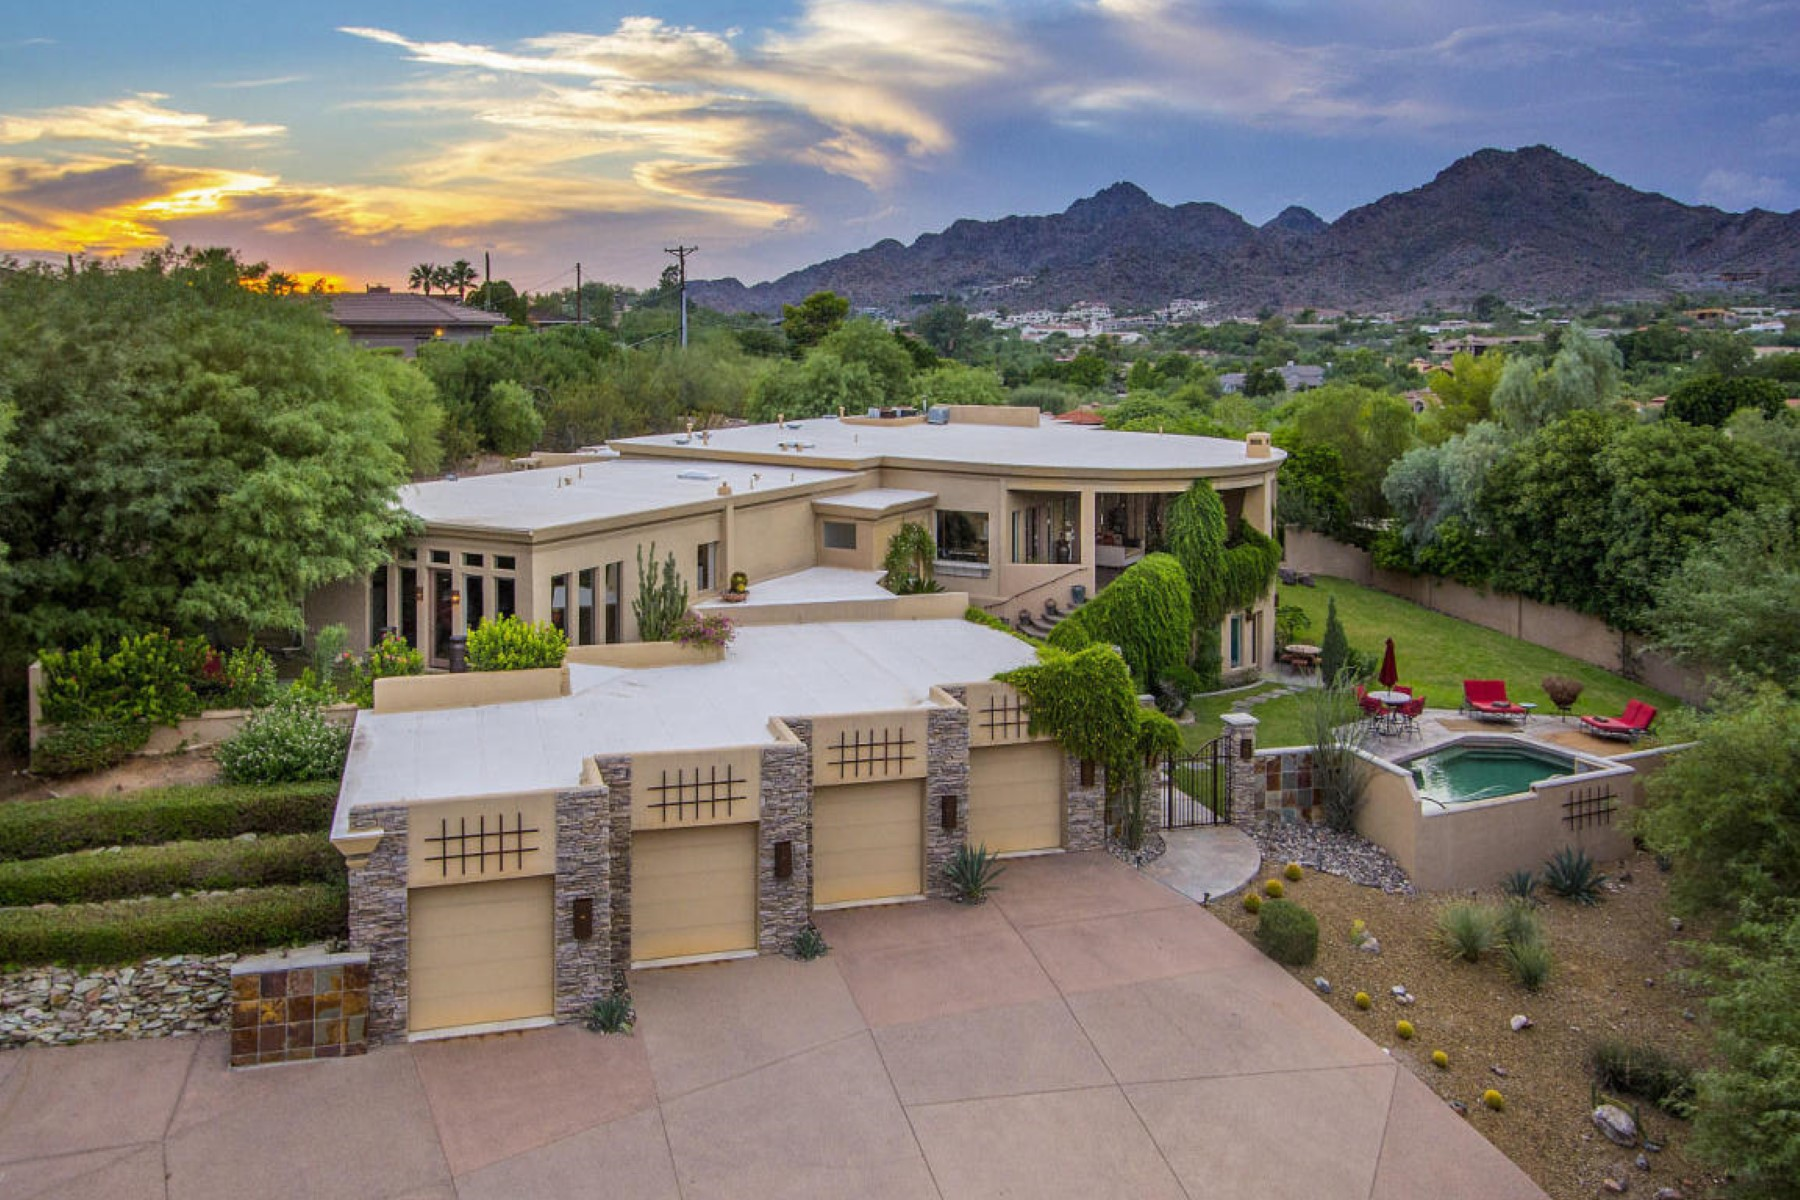 Property For Sale at Breathtaking Camelback Mountain views from this architecturally designed home